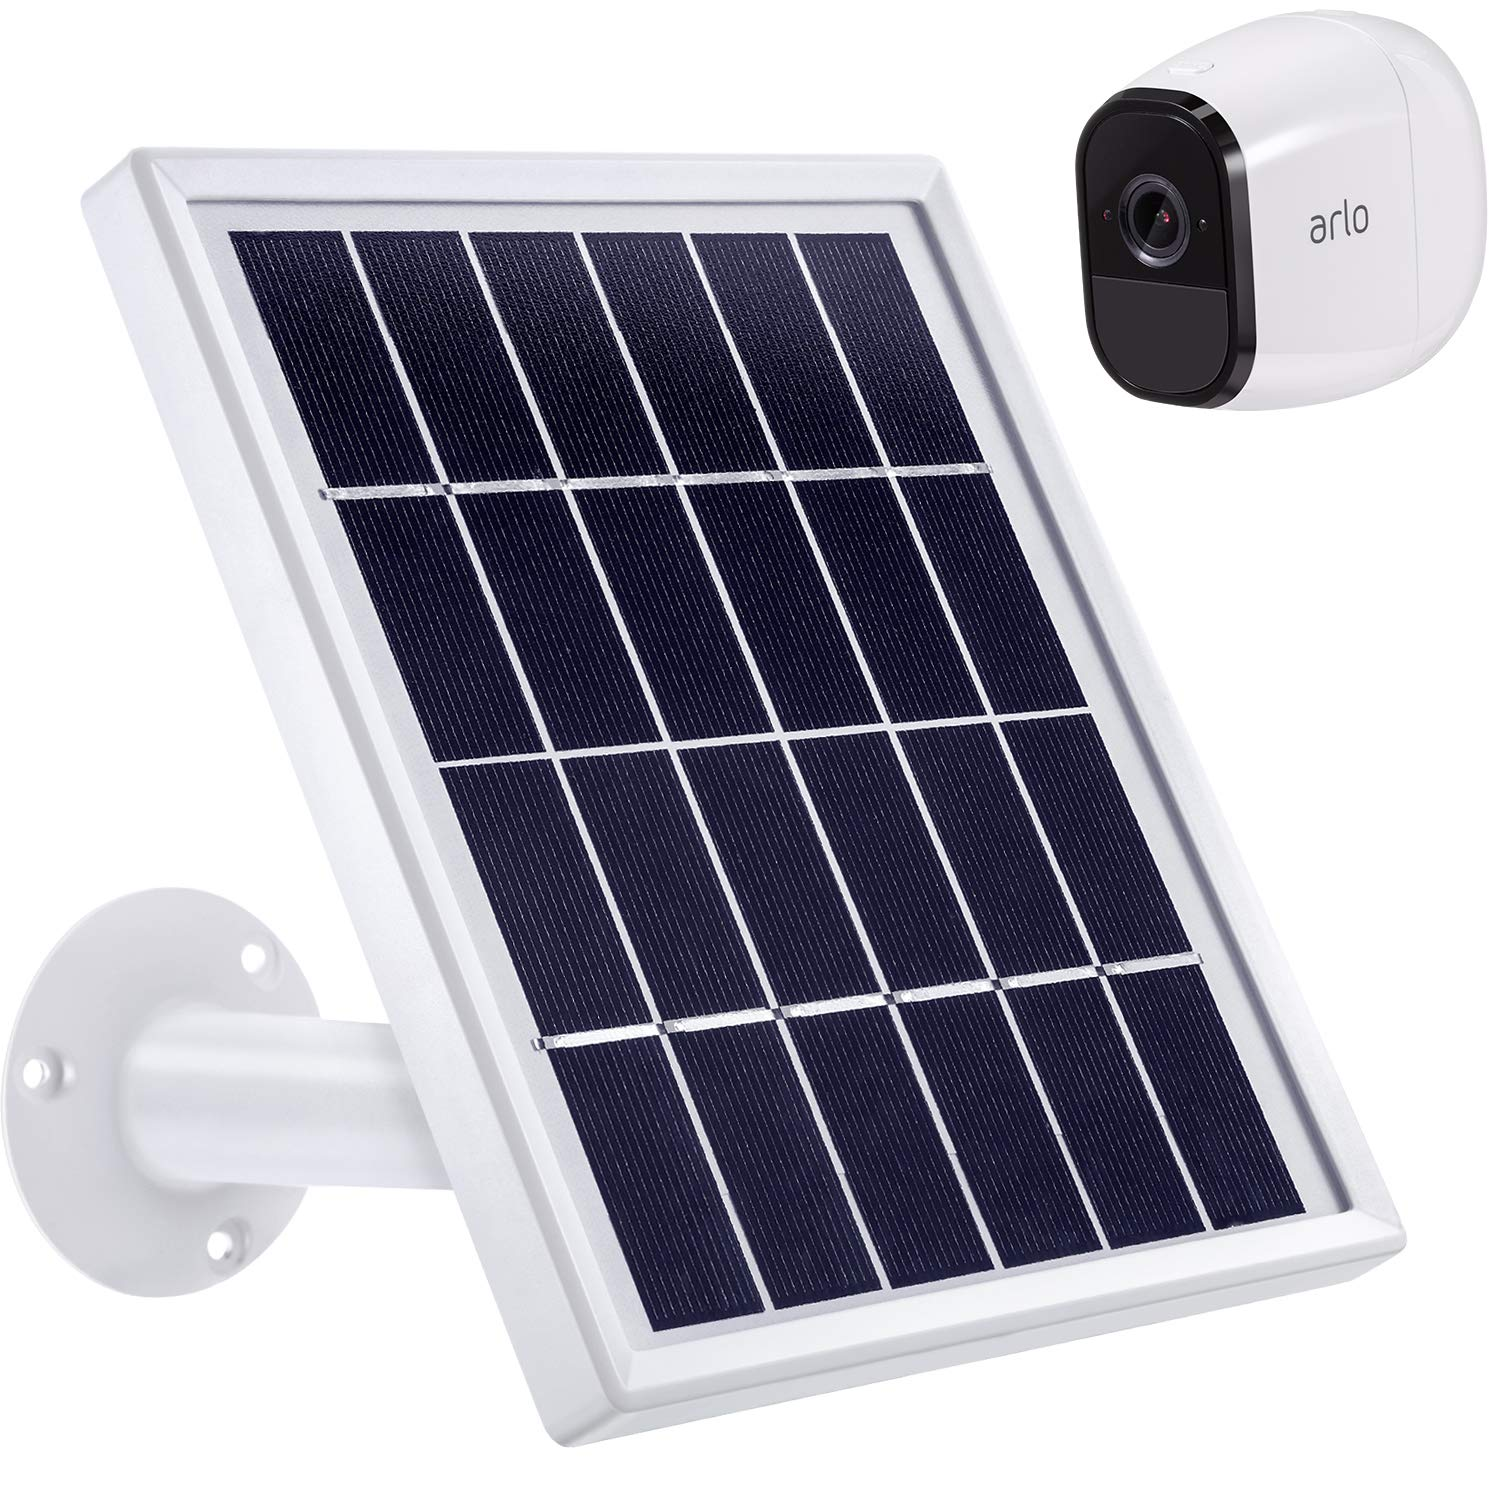 Blulu Solar Panel Only Compatible with Arlo Pro, Waterproof Arlo Accessory to Power Arlo Pro Outdoor Security Camera Continuously with Adjustable Mount Bracket, 12 Feet 3.6 m Cable